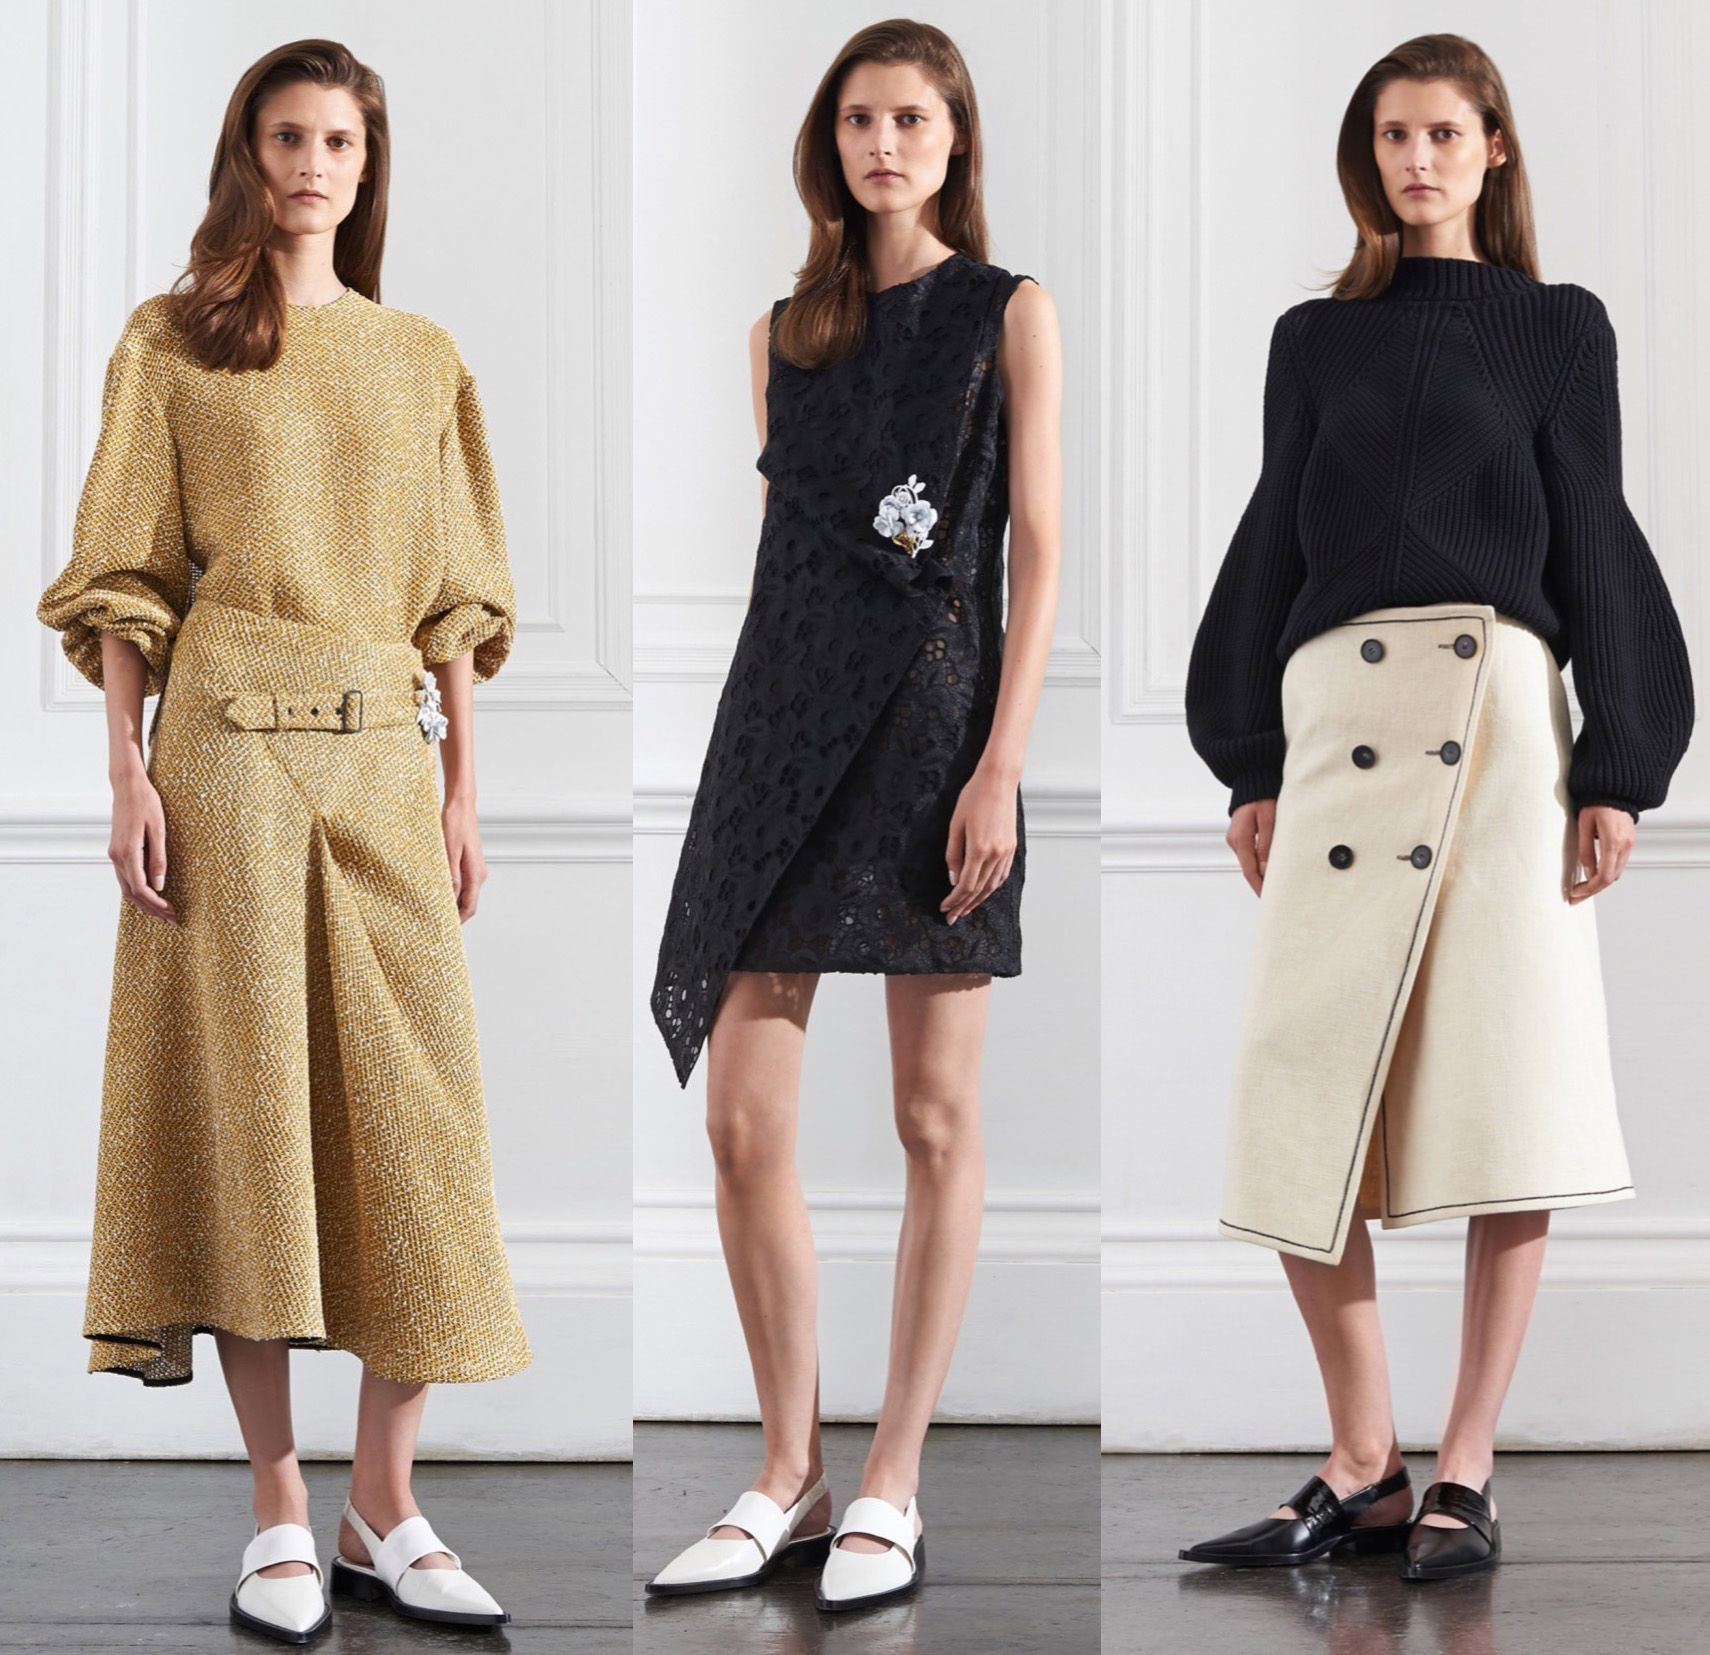 Victoria Beckham Debuts Resort 2016 Collection In New York